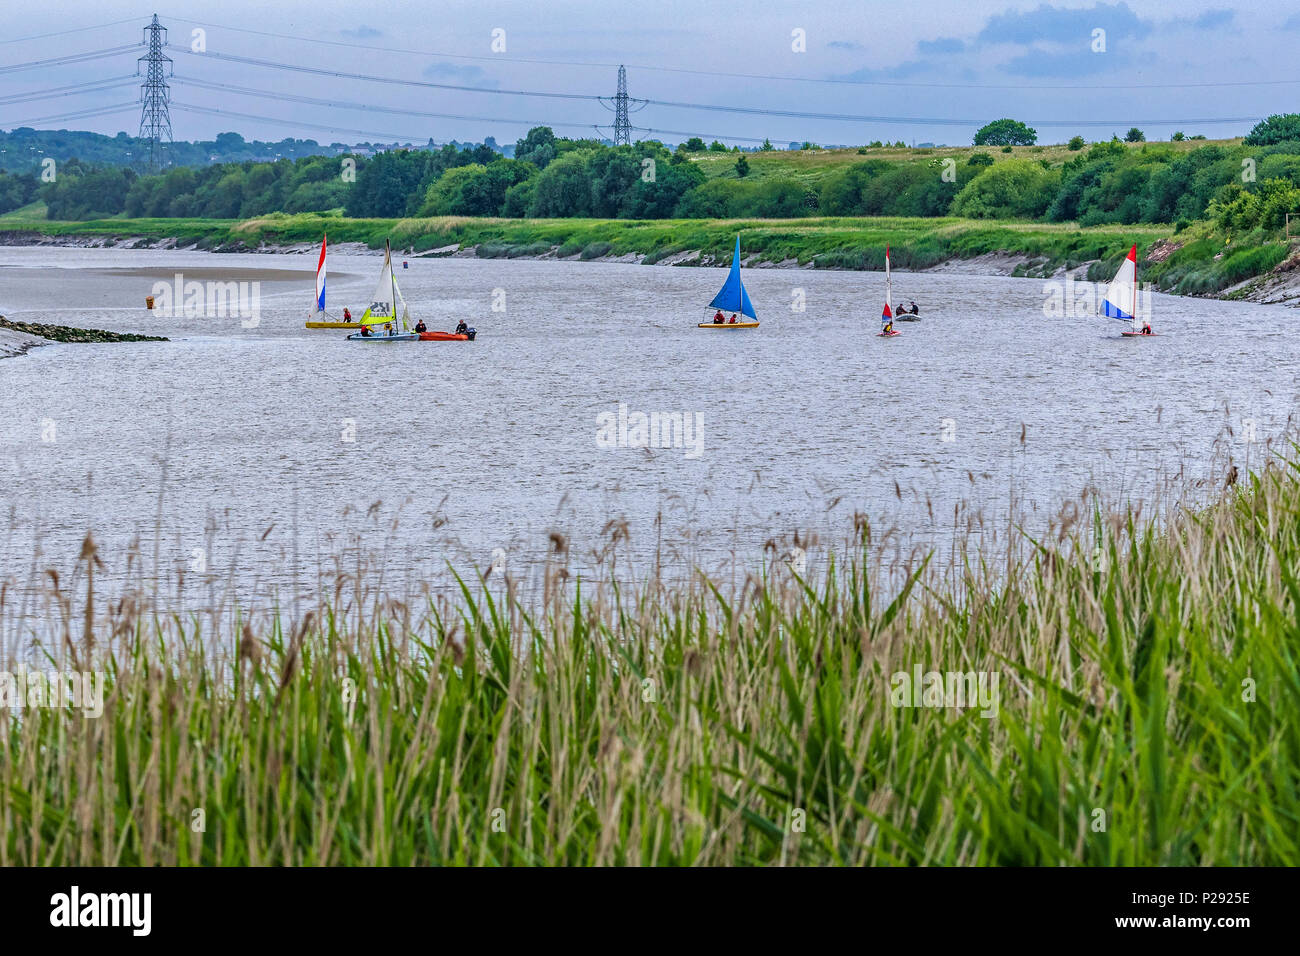 Dinghy sailing on the river Mersey at Fiddlers Ferry, Penketh. - Stock Image